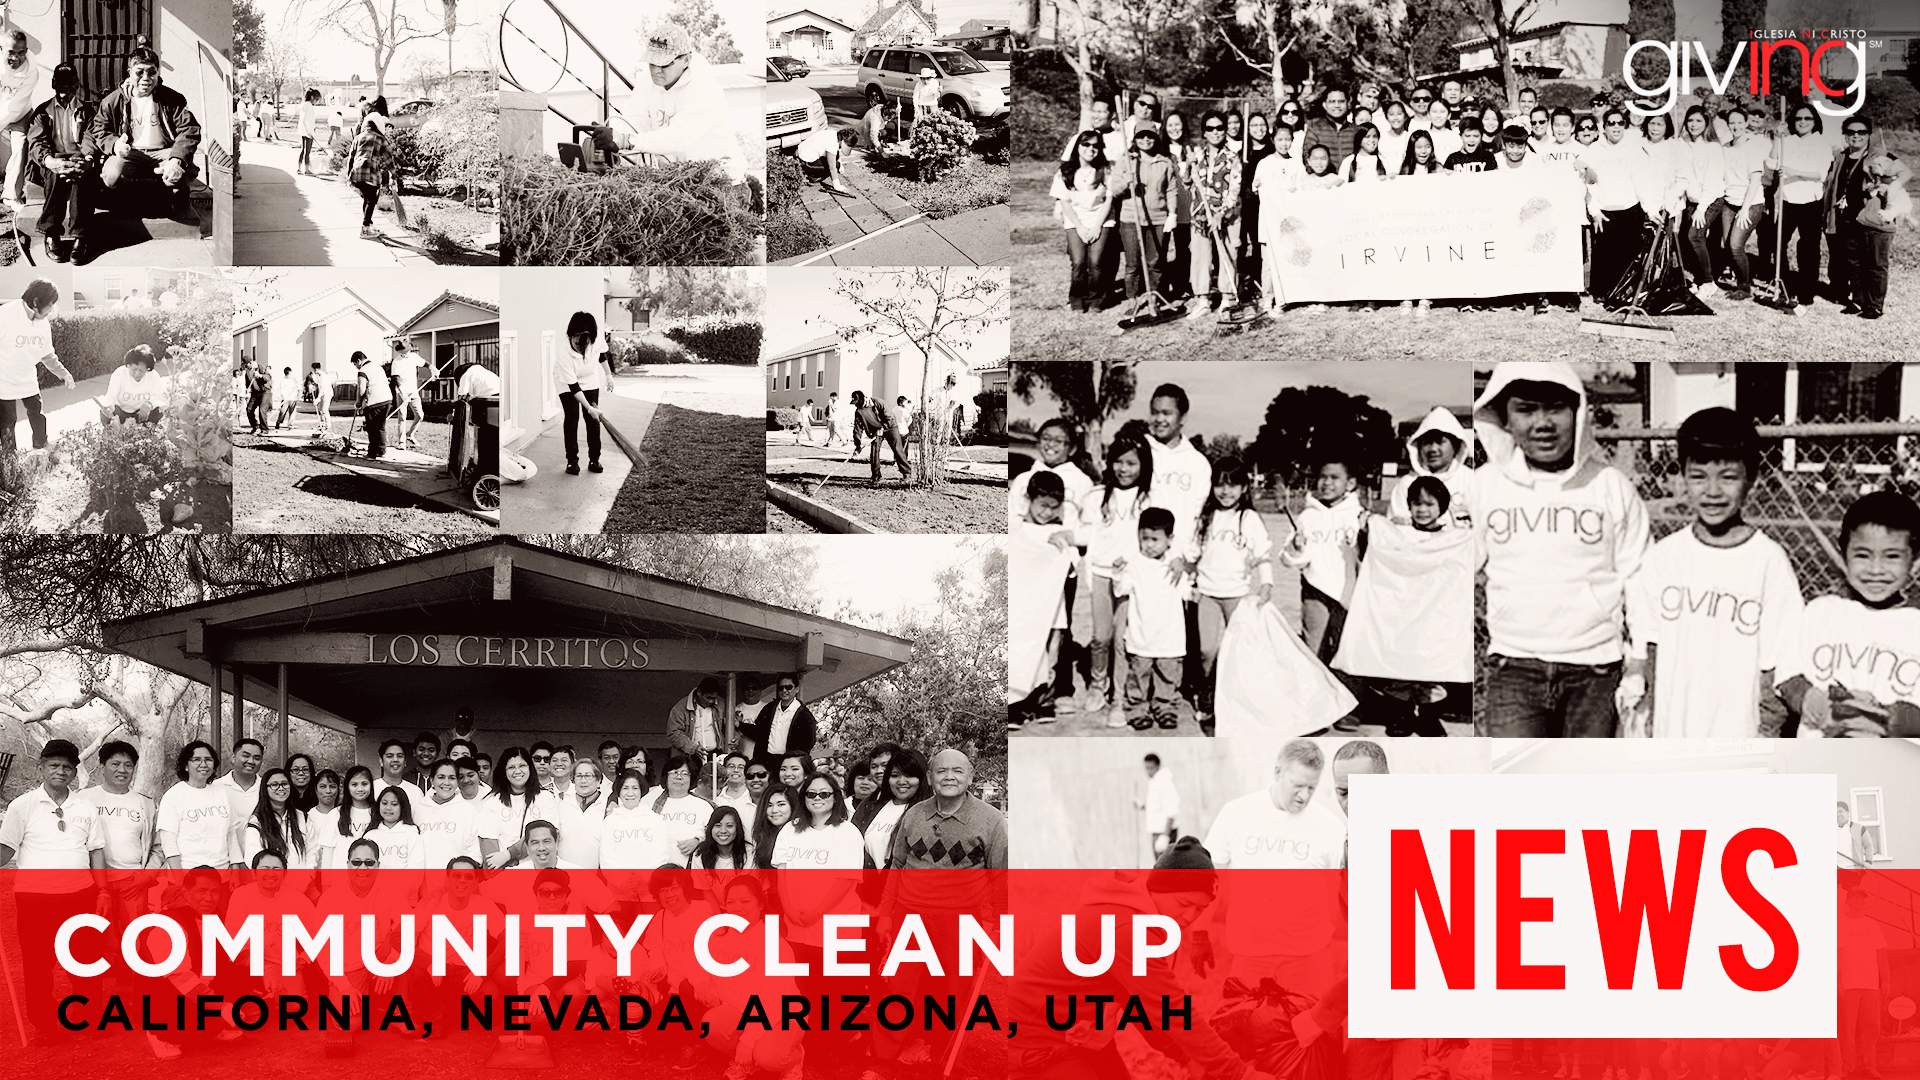 INCGiving News:  Families in Southern California, Nevada, Arizona and Utah Kick Off the New Year with a Community Clean Up